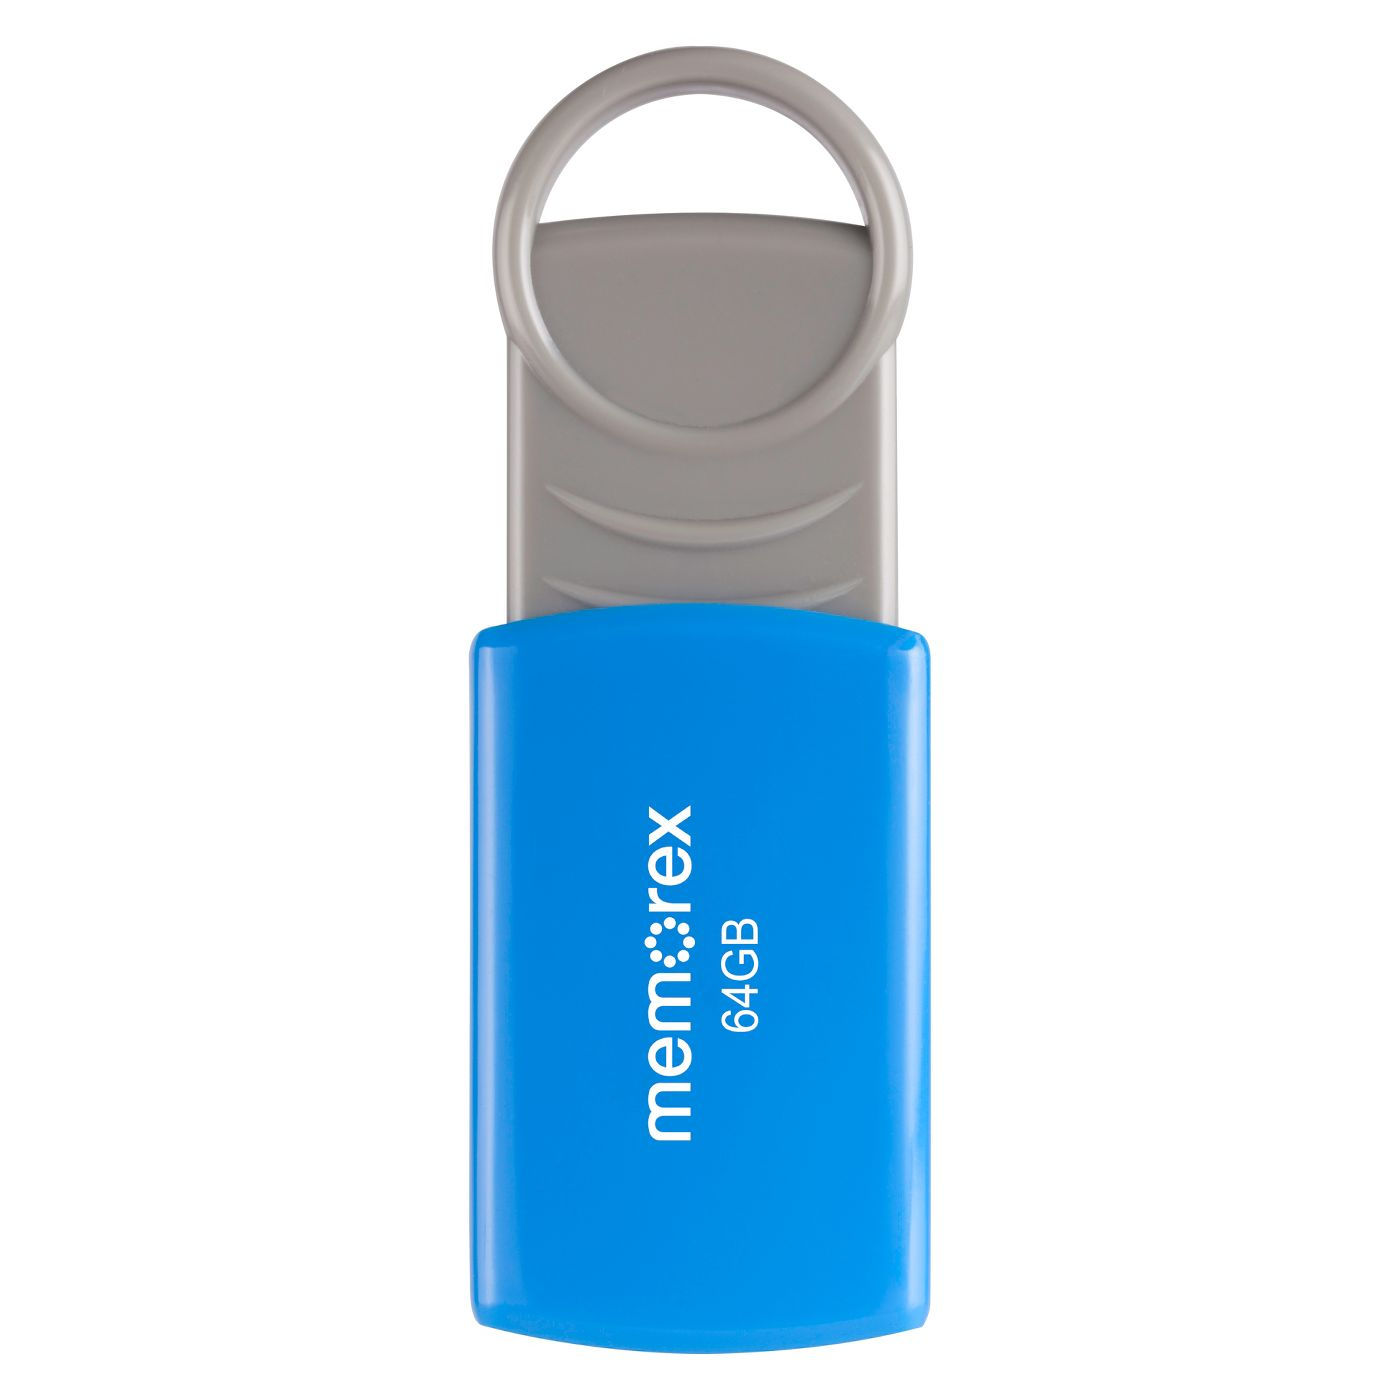 Memorex 64GB USB 2.0 Flash Drive - Blue